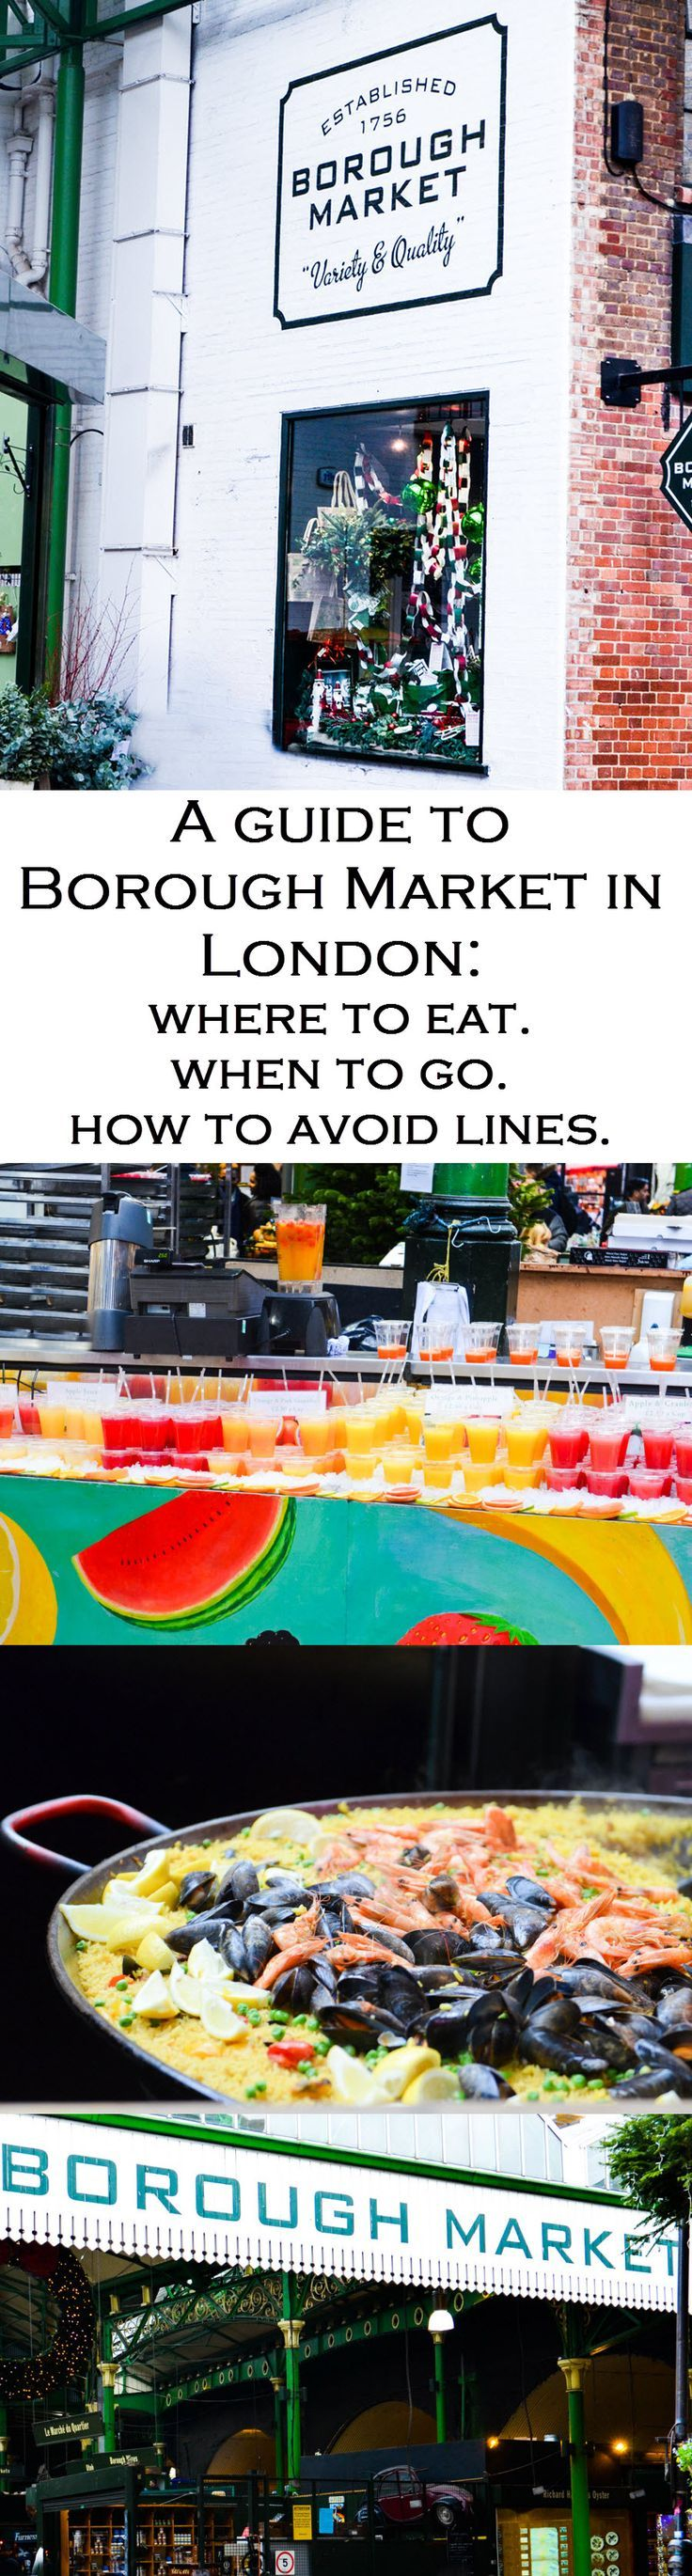 A complete guide to London's Borough Market. Where to get fresh produce, cheese, meat, and bread as well as where to eat lunch and how to avoid some lines!! A must visit in London, UK!